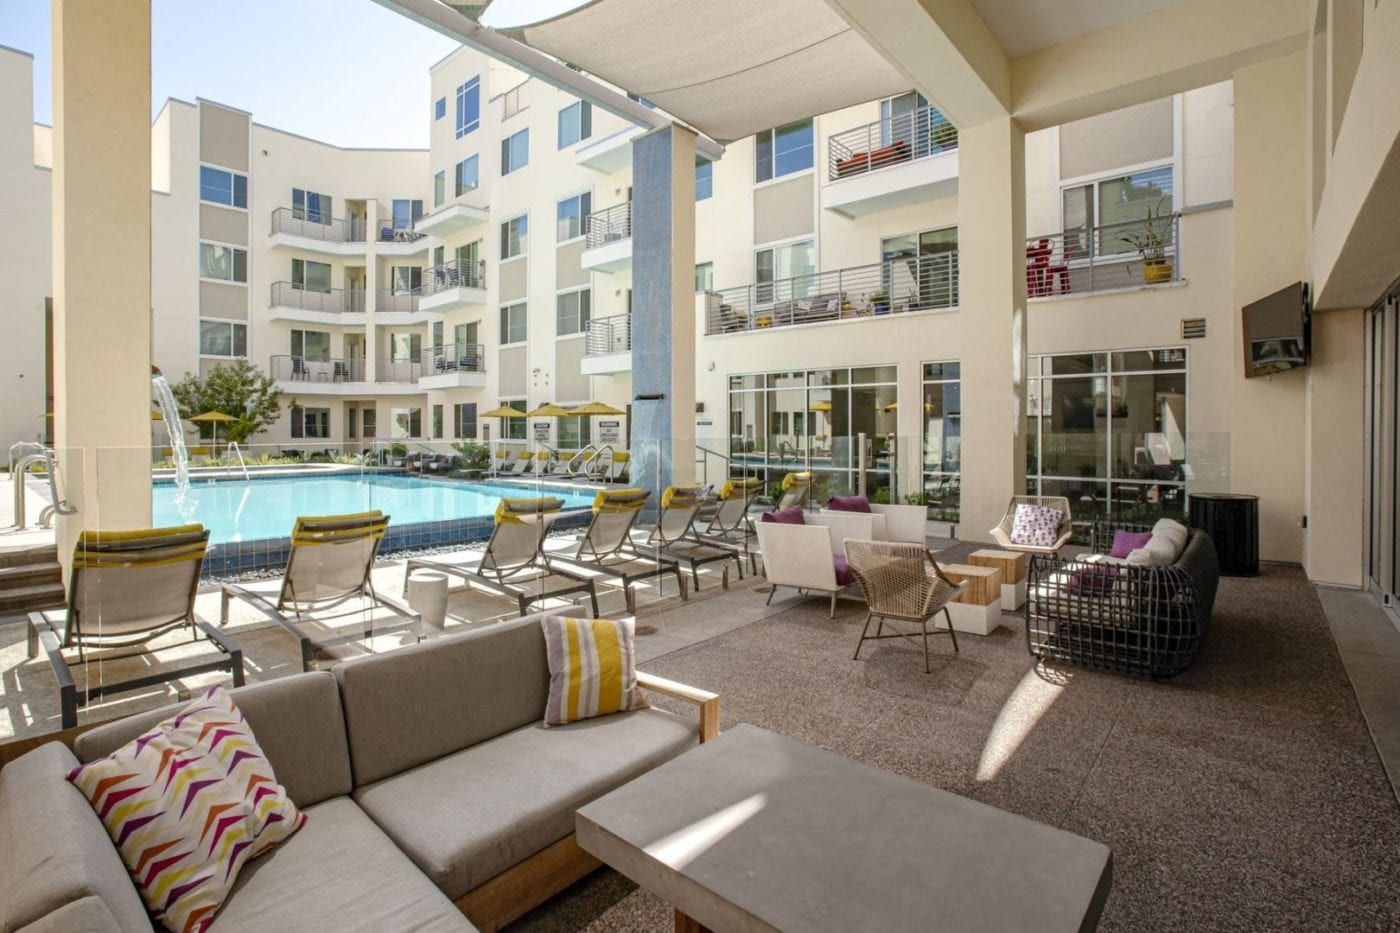 Pet Friendly Apartments in Phoenix, AZ - Outdoor Lounge Next to Pool with Modern Decor and TV